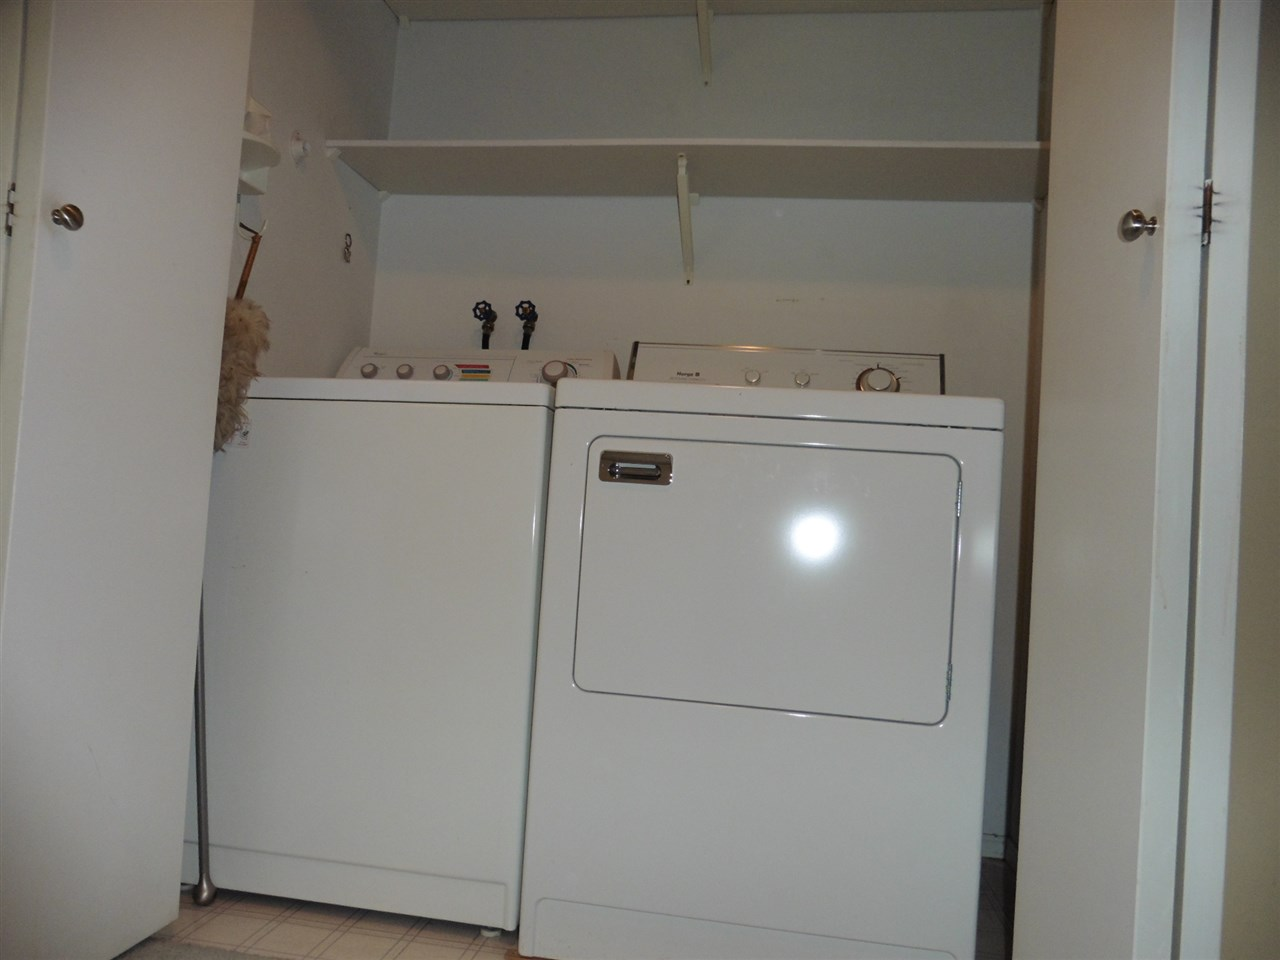 Convenient in-suite laundry closet with overhead shelving.